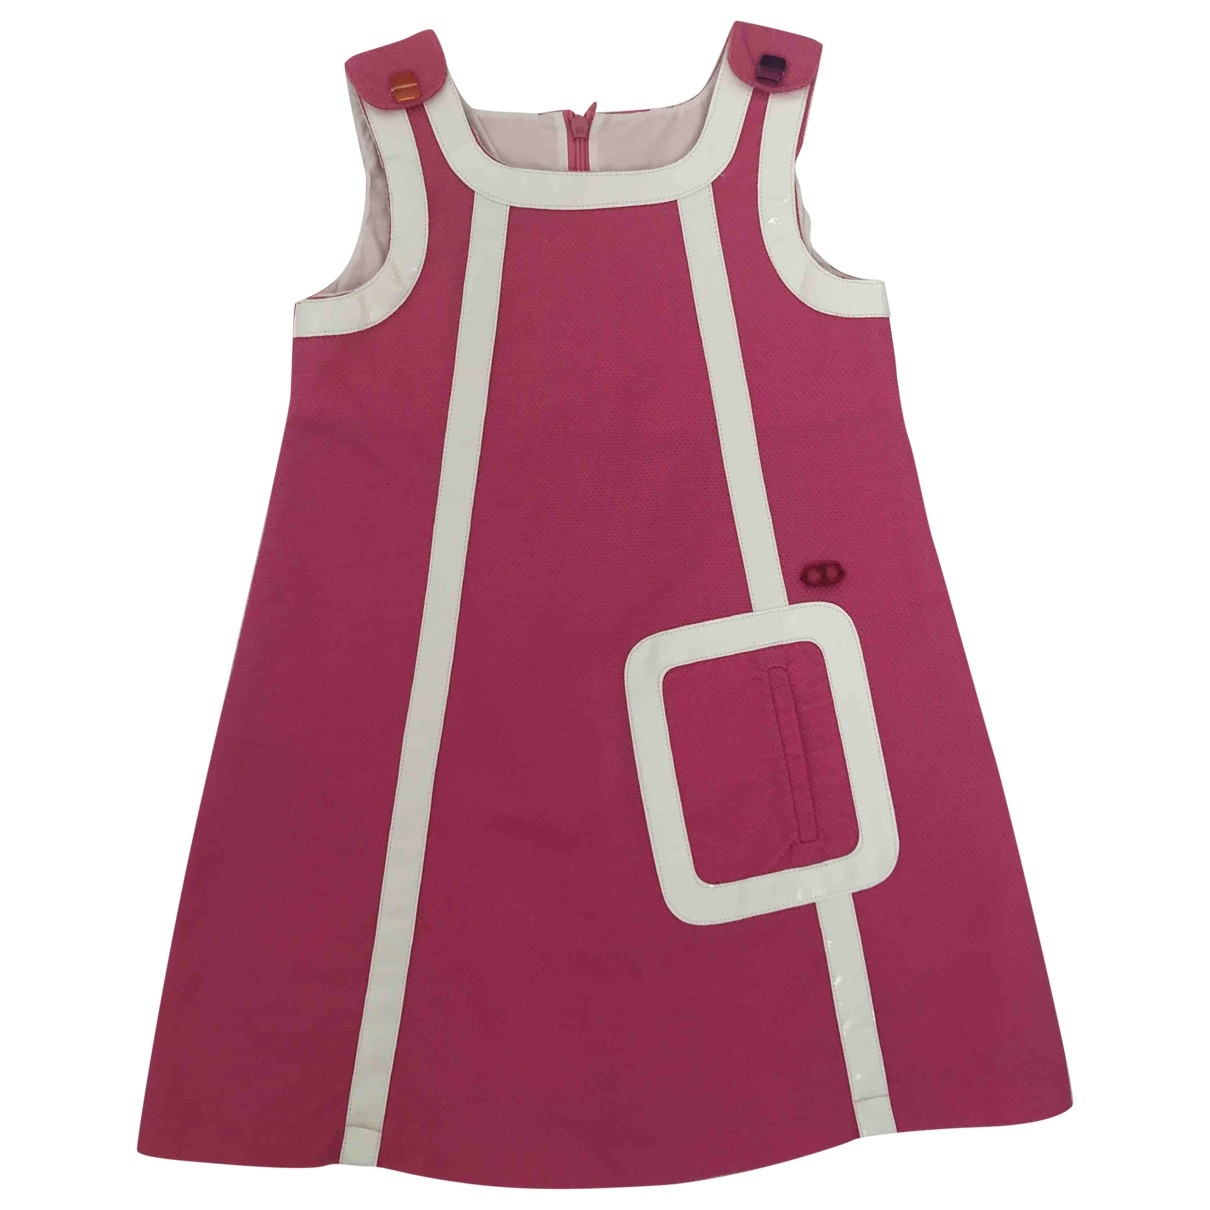 Dior \N Pink Cotton dress for Kids 4 years - up to 102cm FR